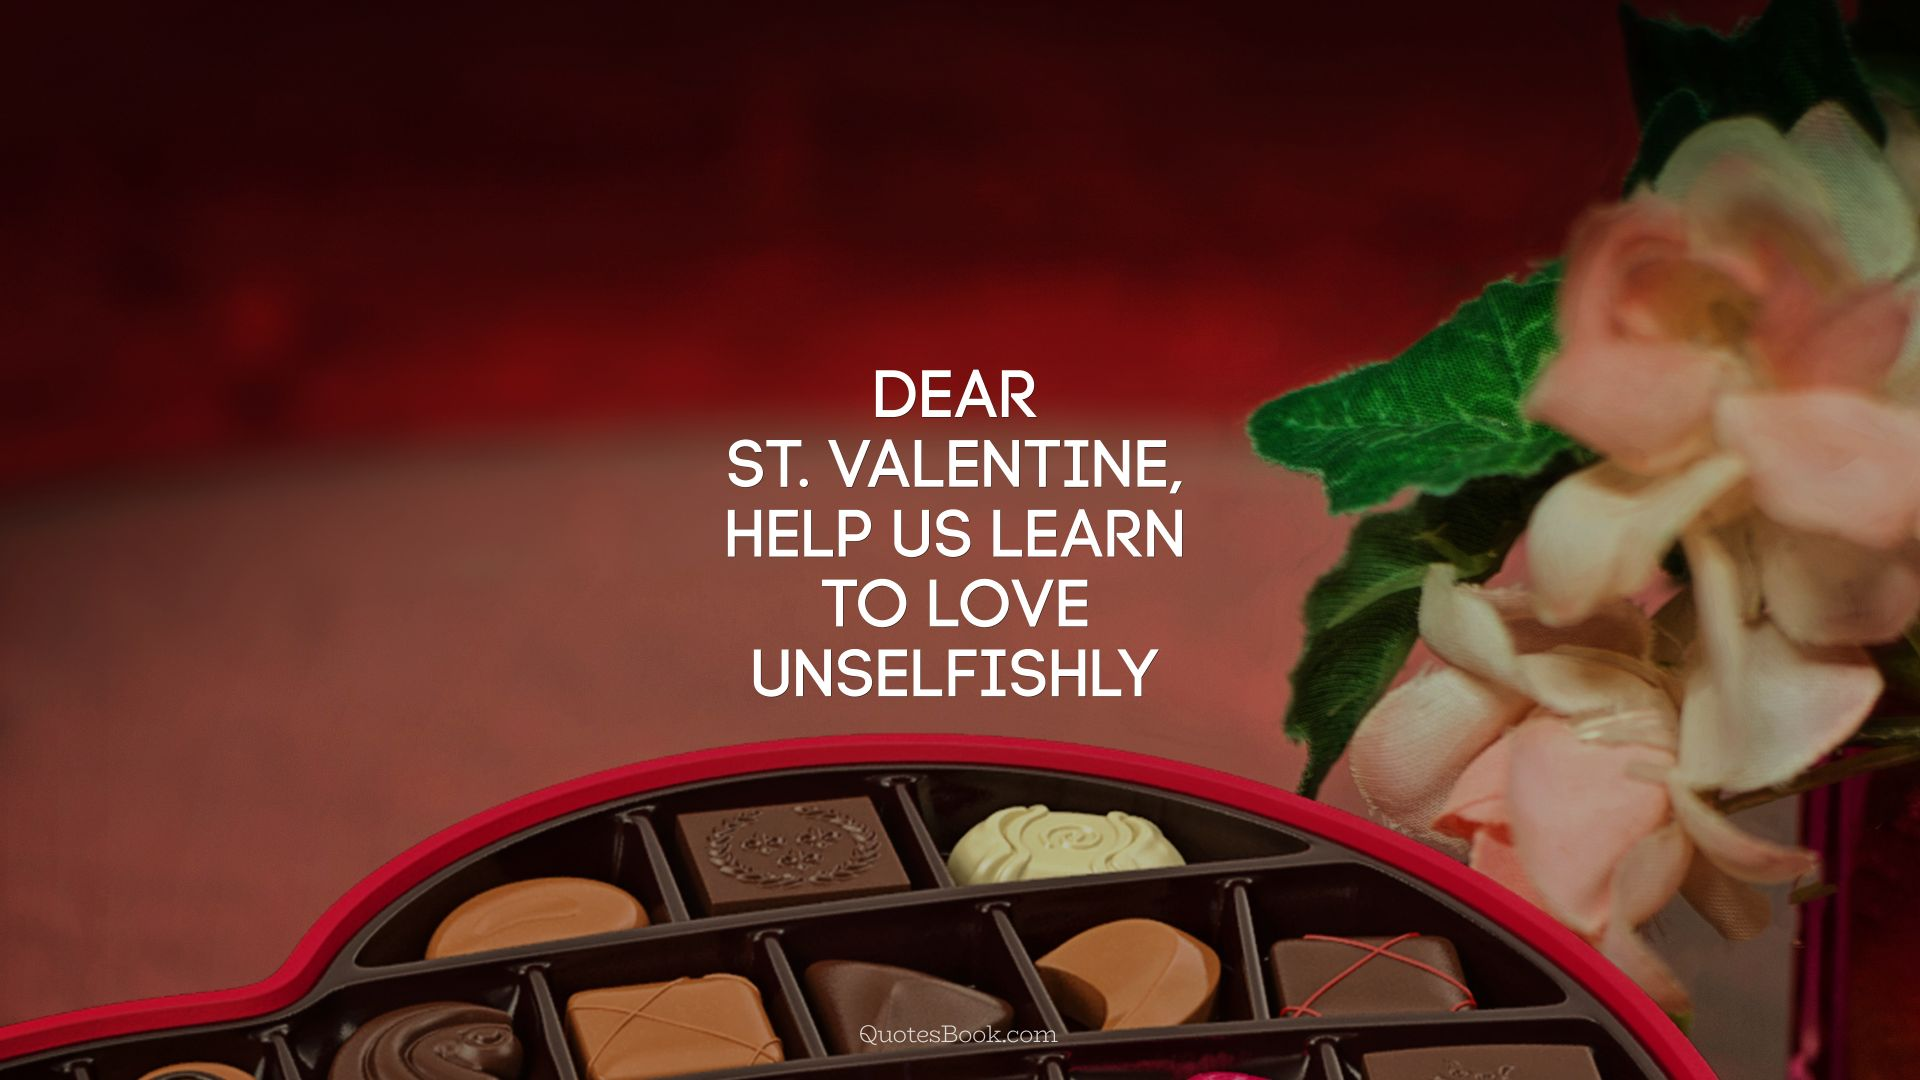 Dear St. Valentine, help us learn to love unselfishly . - Quote by Unknown